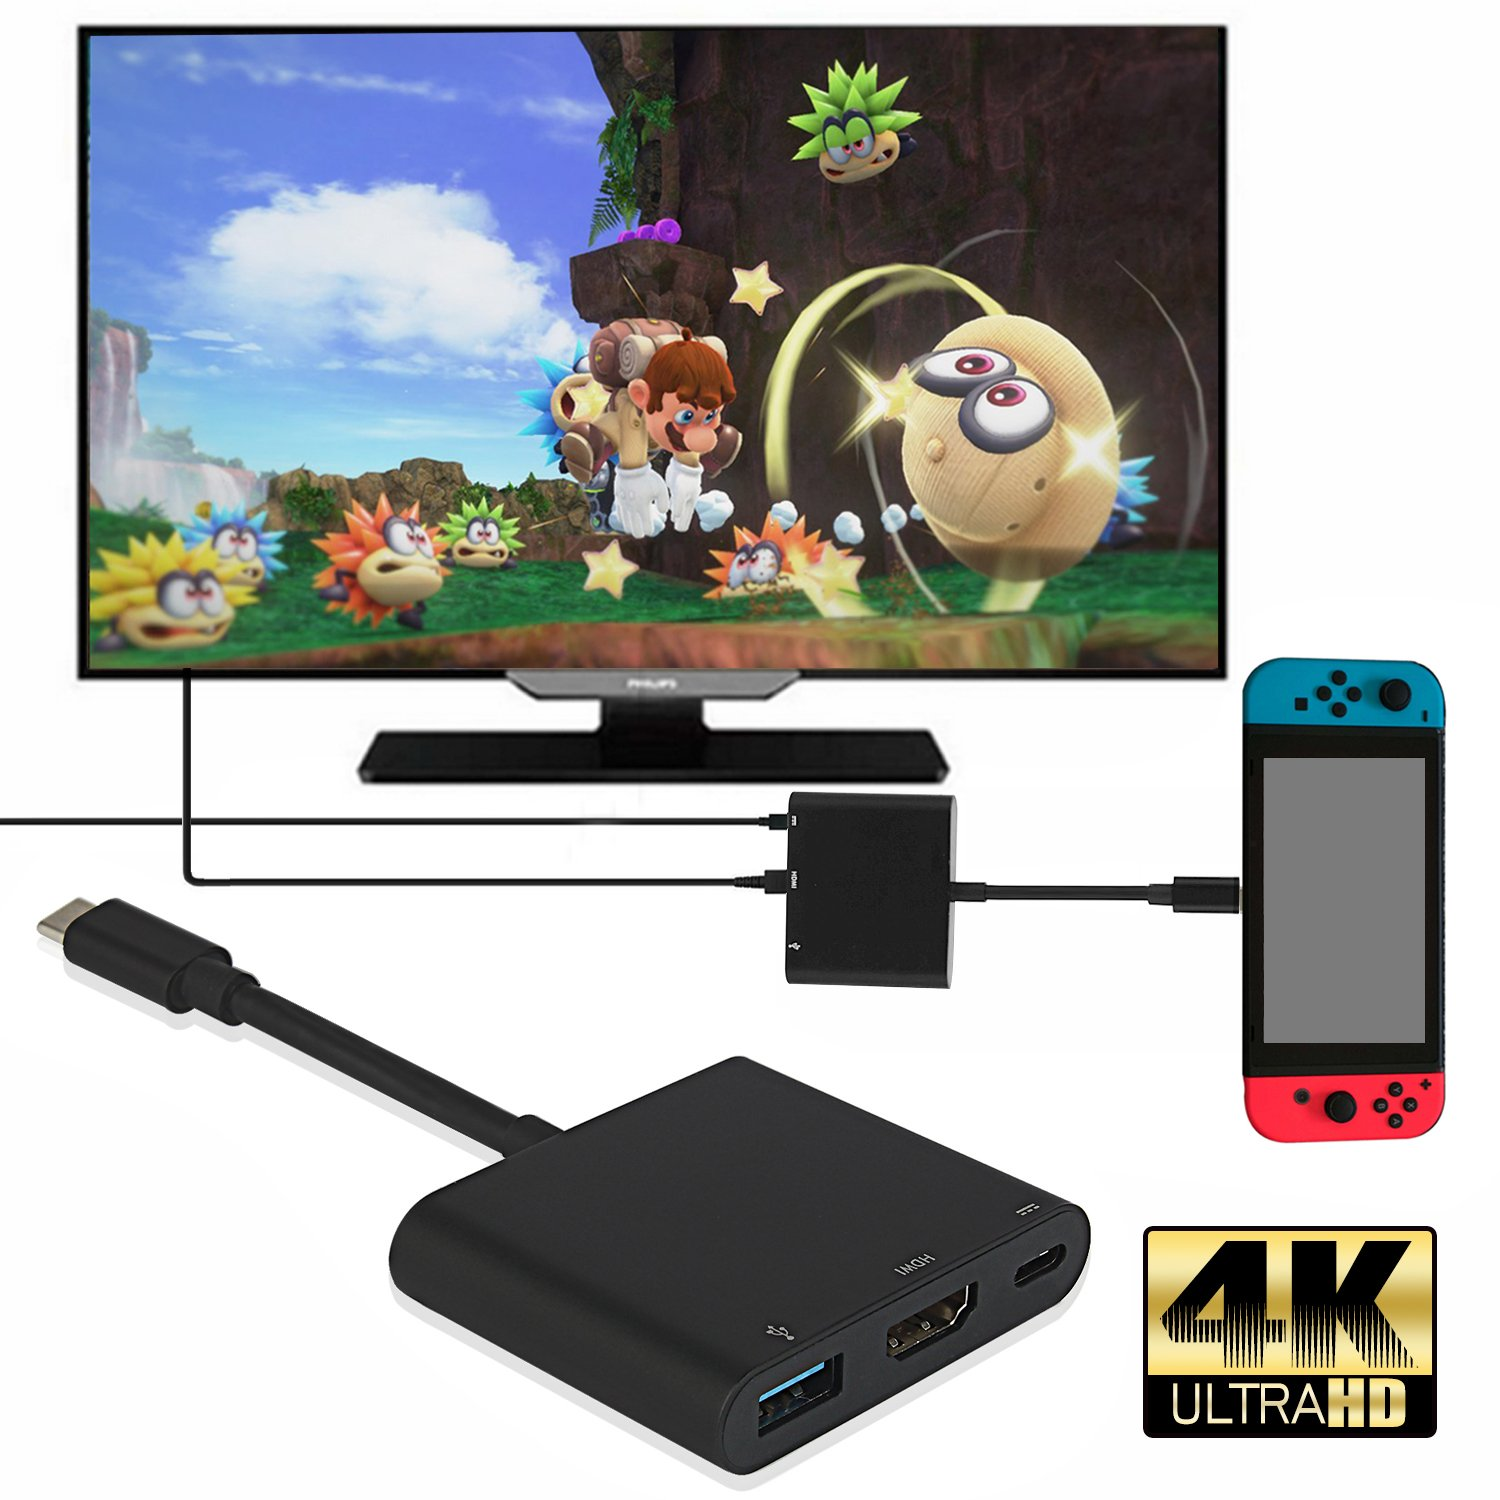 HDMI USB C Hub Adapter for Nintendo Switch, 1080P 4K Type C to HDMI Converter Dock Cable for Nintendo Switch